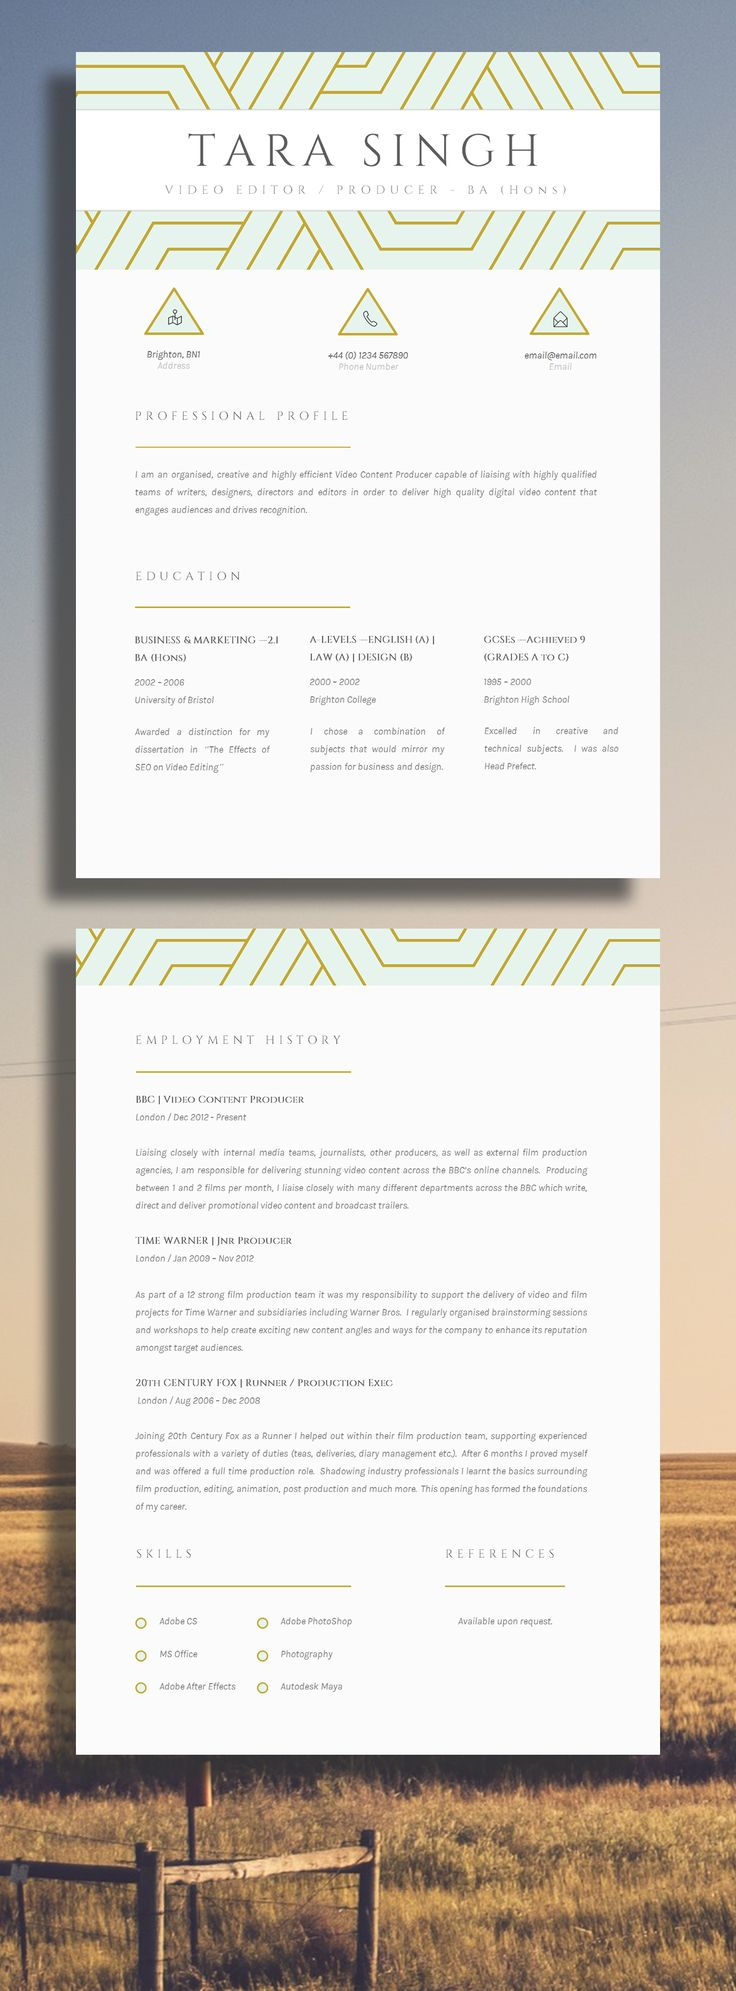 best ideas about creative cv design cv design get your attractive and professional real estate brochure design in 24 hours